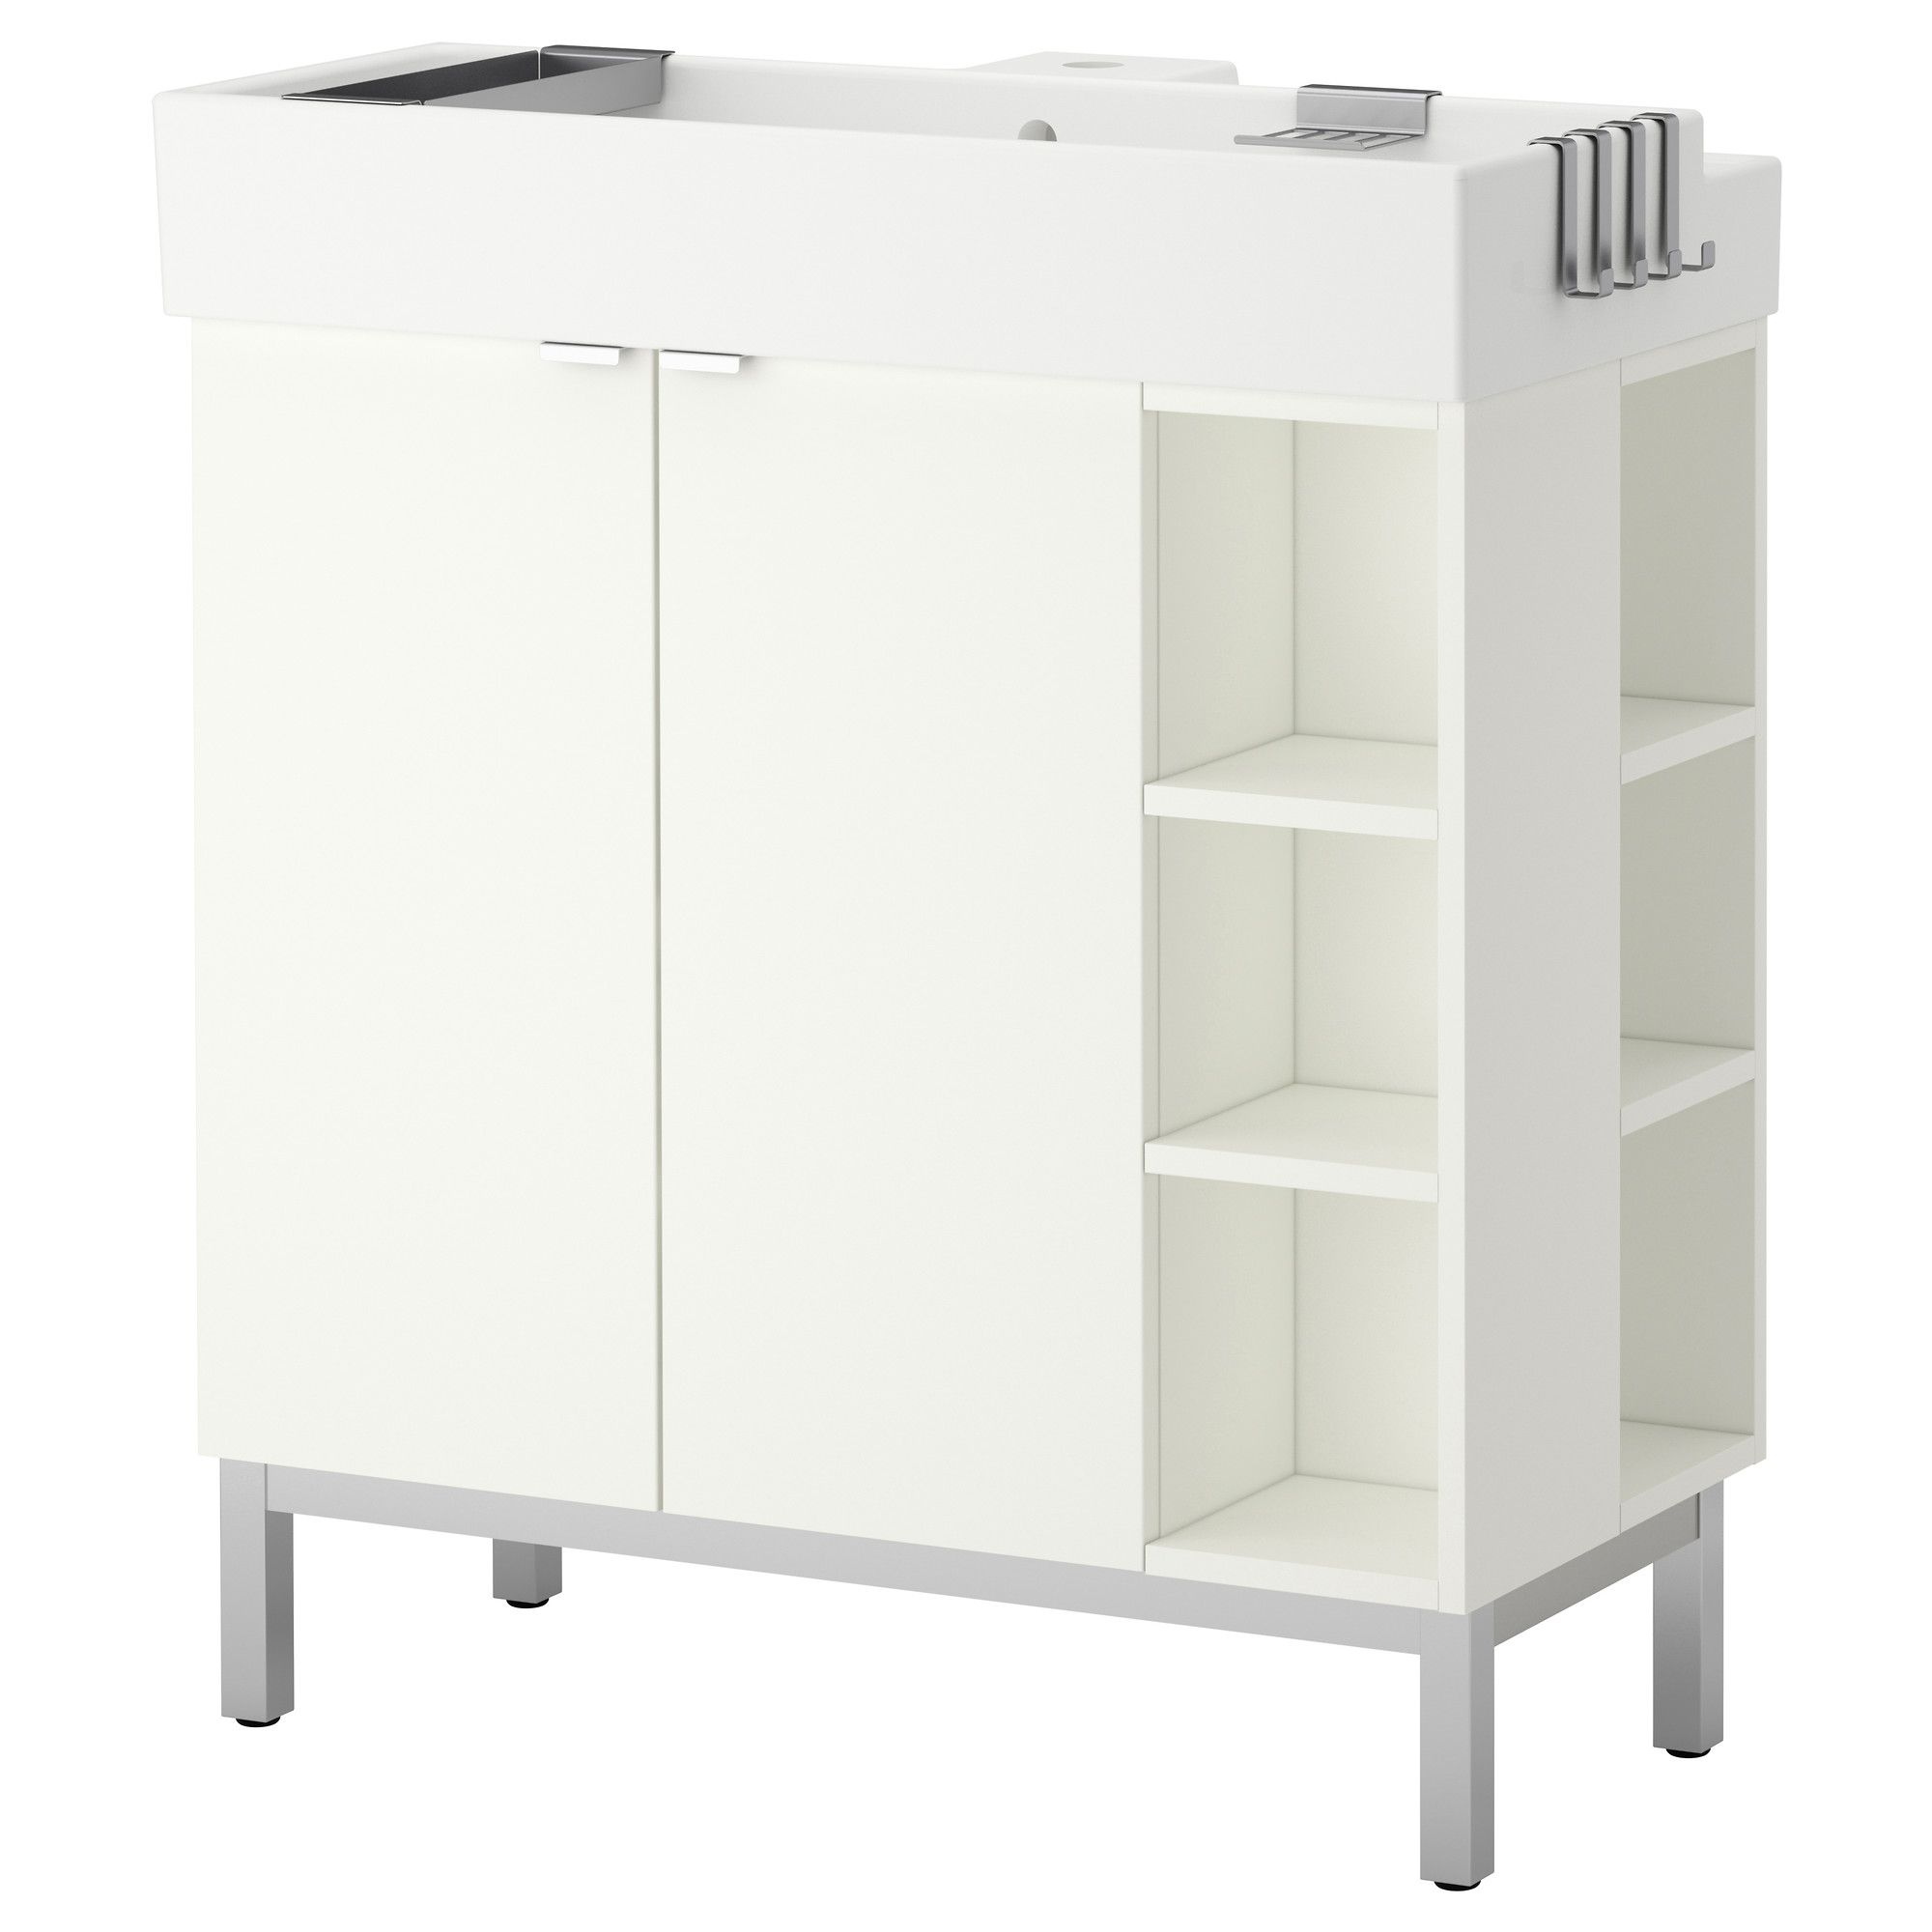 Bathroom sink cabinets ikea - Lill Ngen Sink Cabinet 2 Doors 2 End Units Aluminum Ikea Product Dimensions